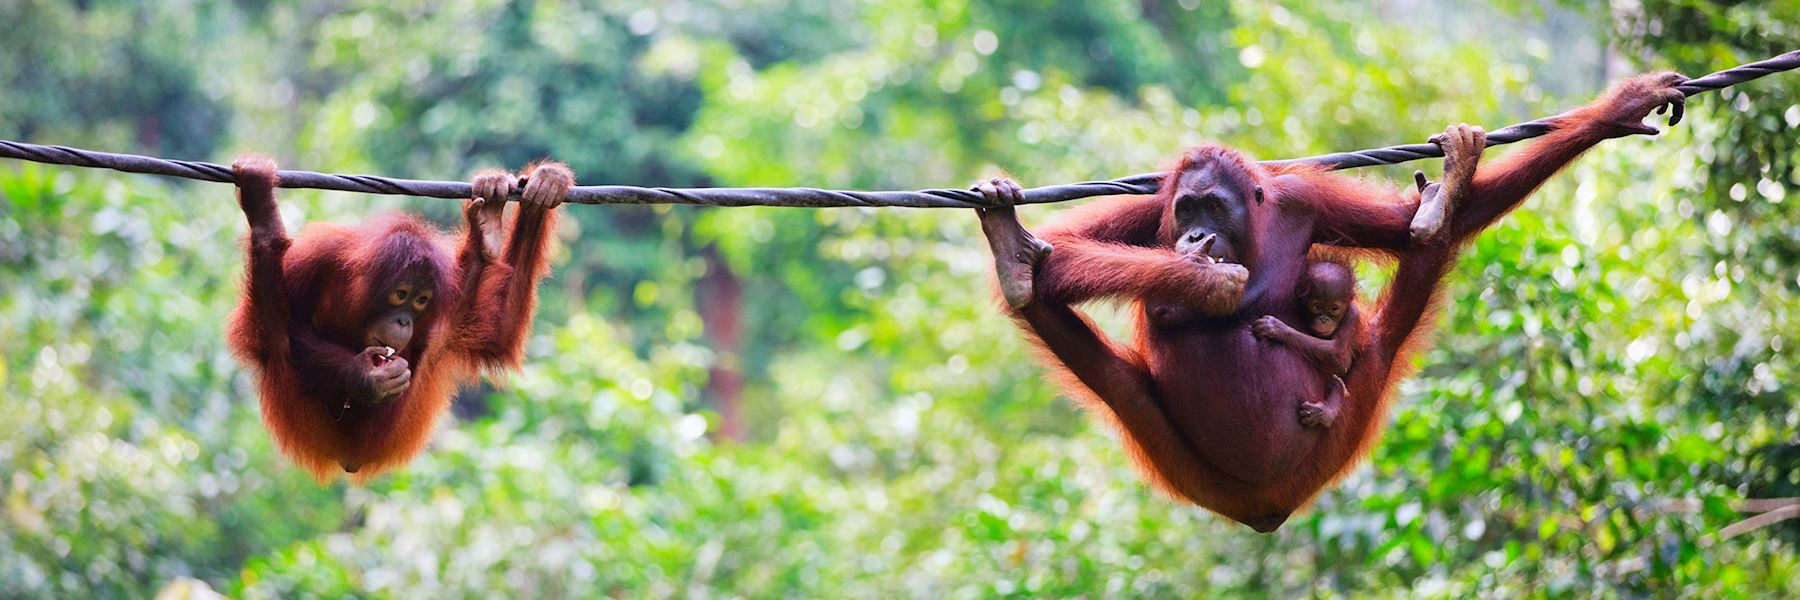 Borneo trip ideas